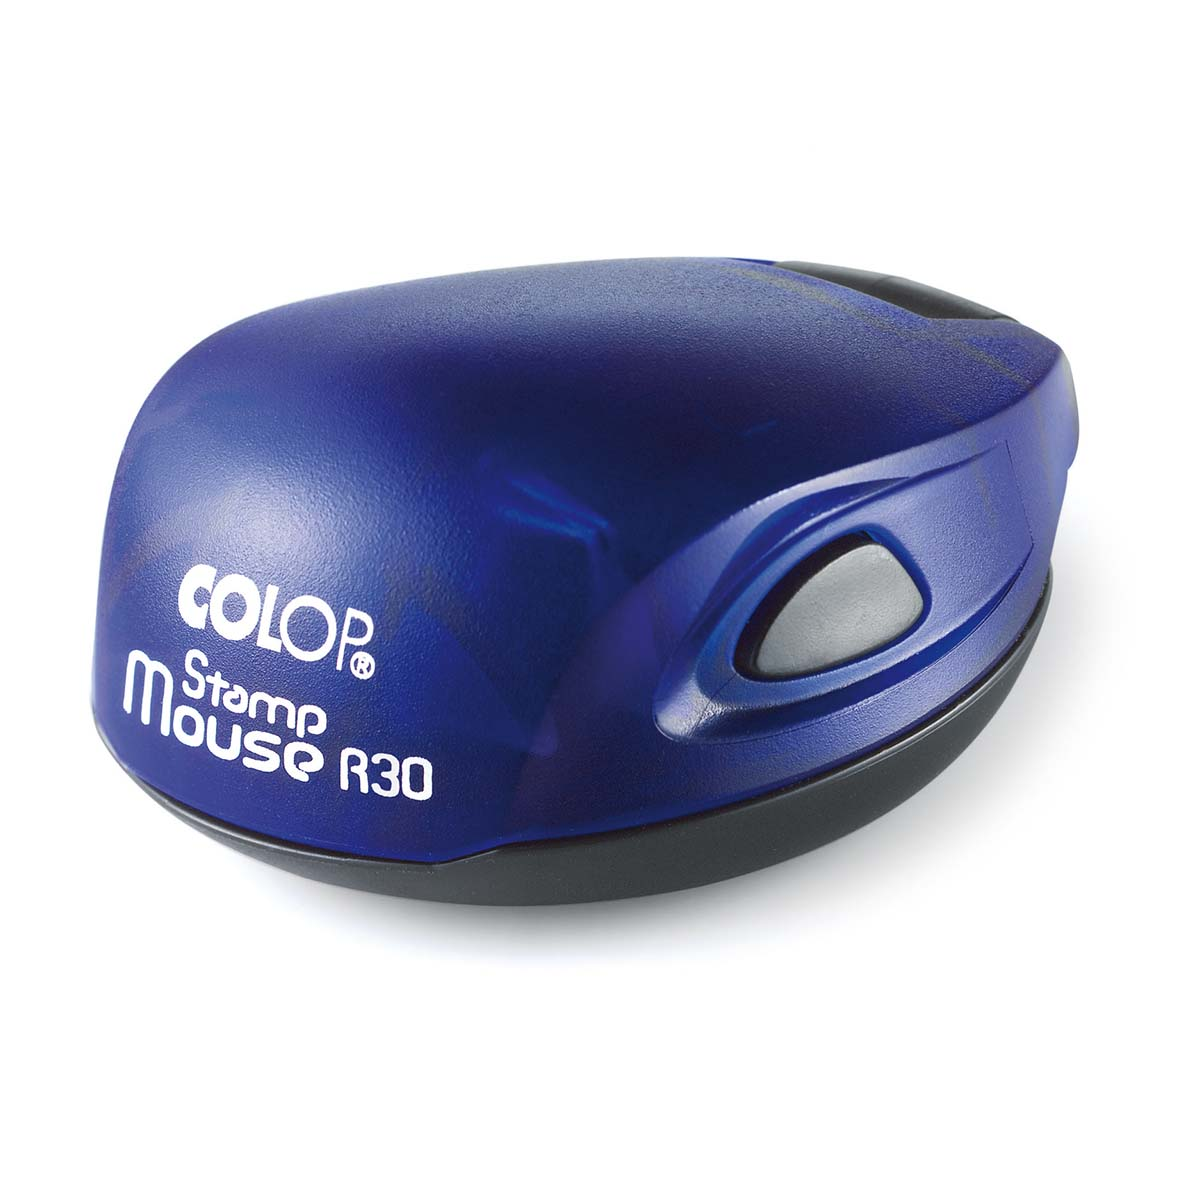 Stamp Mouse R30